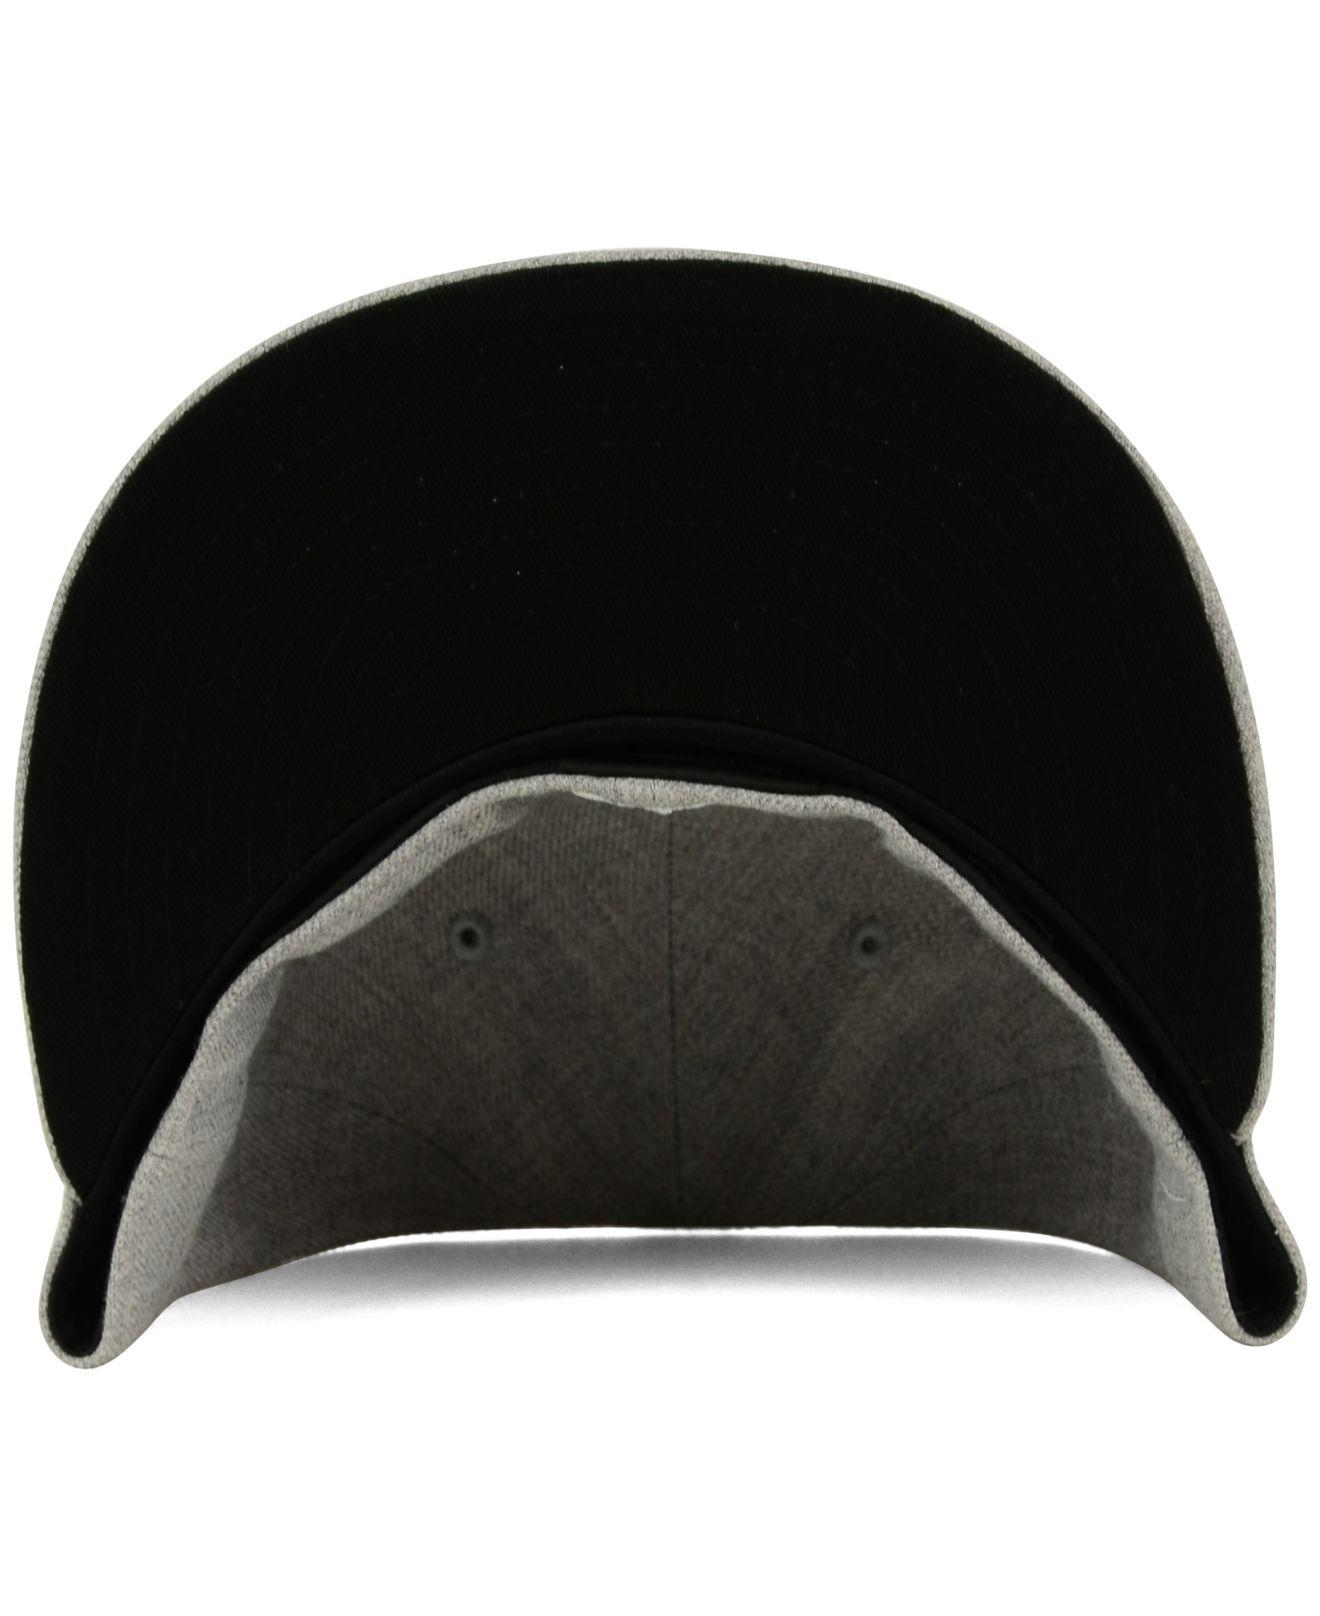 ... New England Patriots Heather Black White 59fifty Cap for Men - Lyst.  View fullscreen 0a6702a70